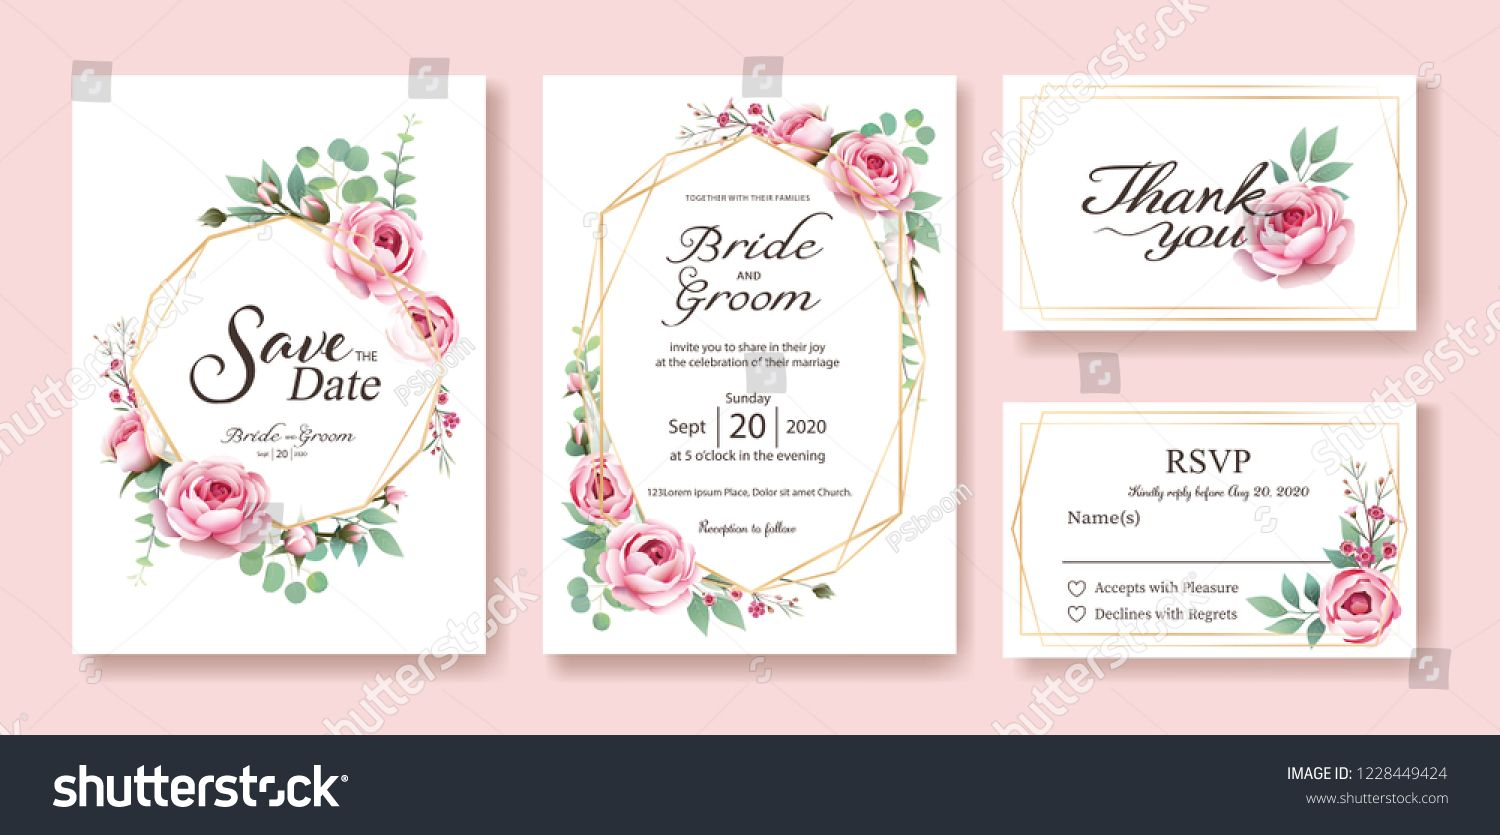 Floral Wedding Invitation Save The Date Thank You Rsvp Card Design Template Vector Floral Wedding Invitations Wedding Invitation Cards Wedding Invitations